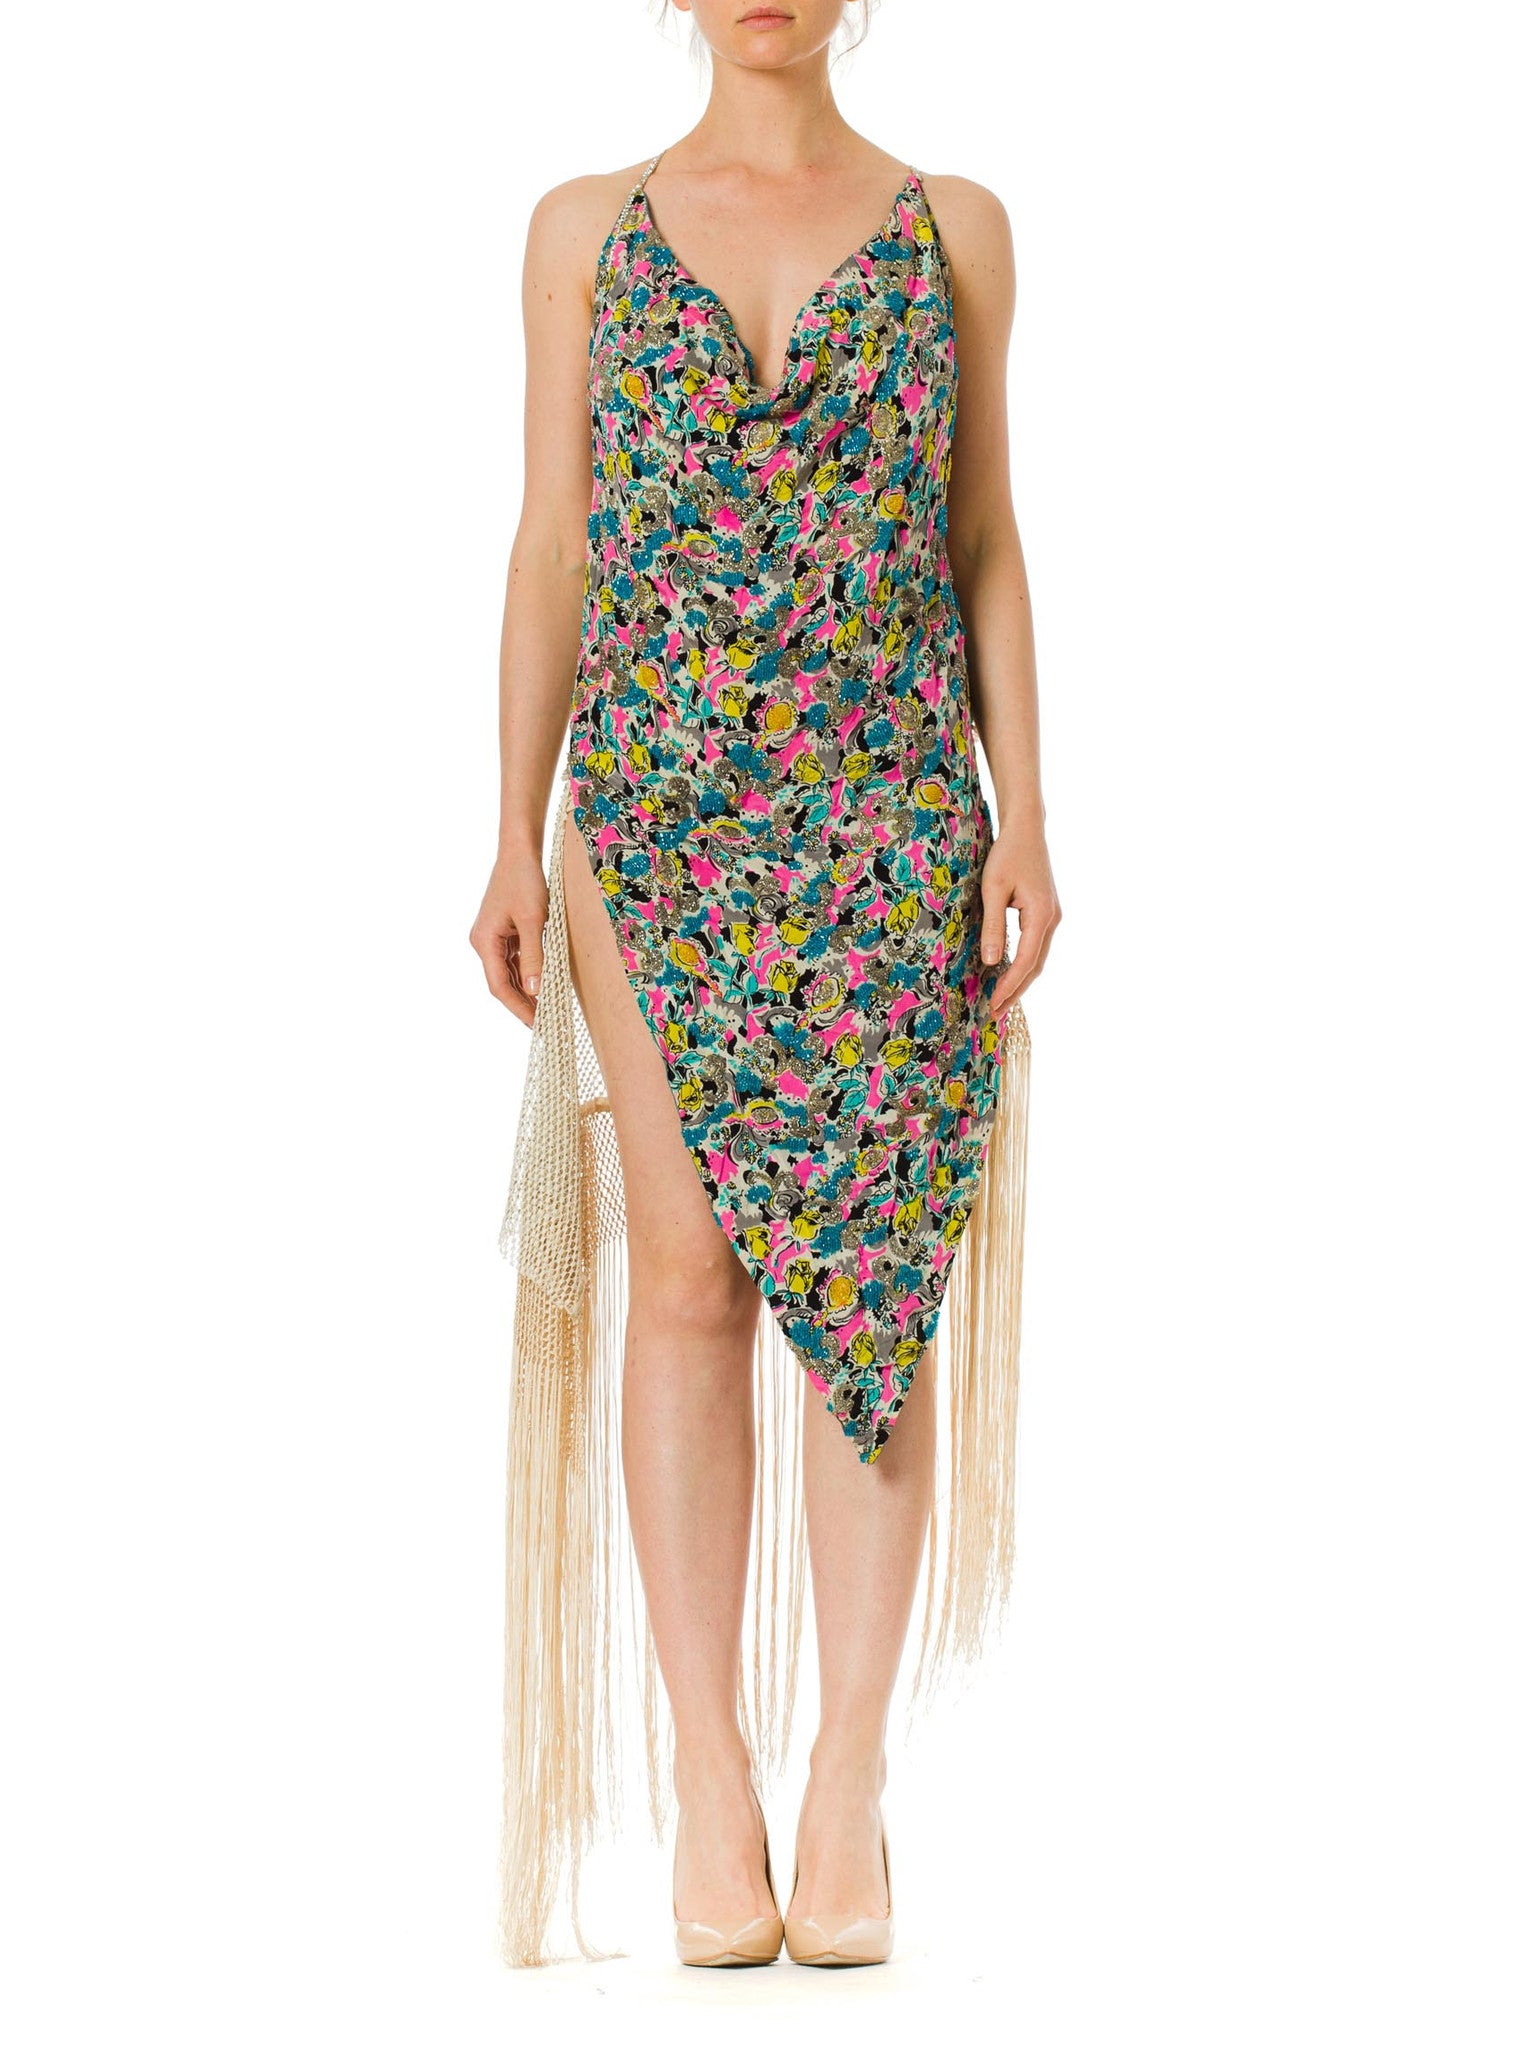 MORPHEW COLLECTION Floral Printed Cocktail Dress Made Of 1940S Beaded Silk And 1930S Fringed Mesh